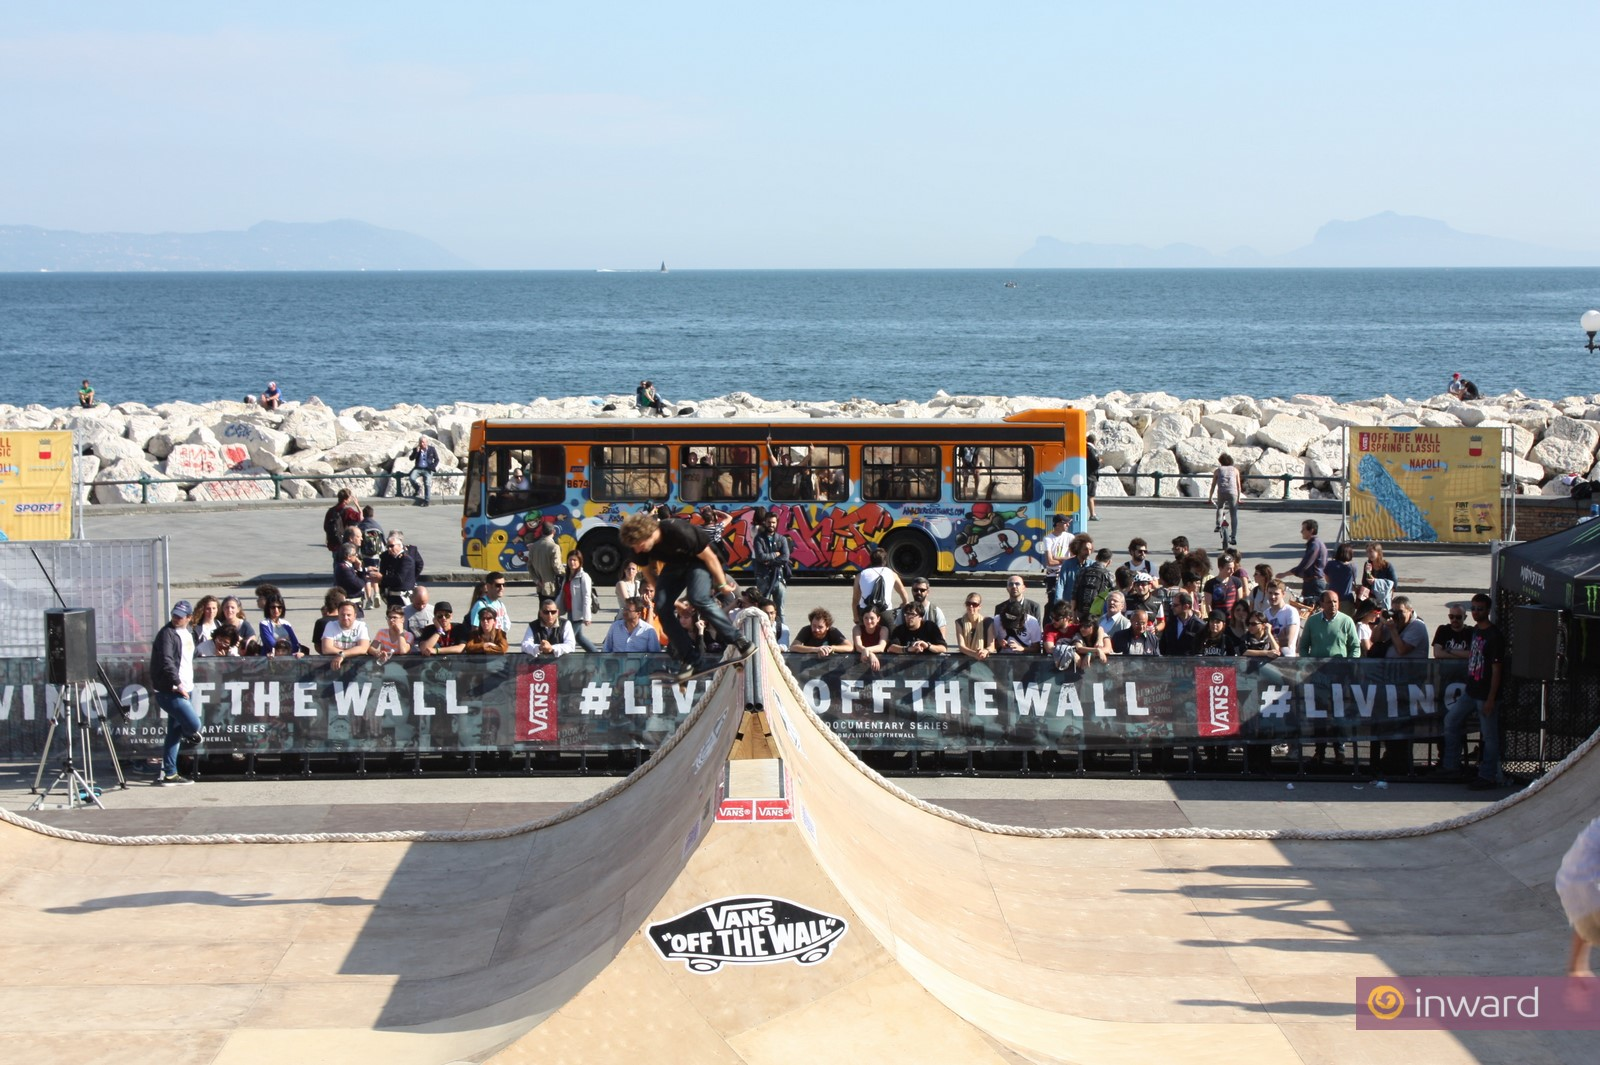 A Napoli il Vans Off The Wall Spring Classic 2014